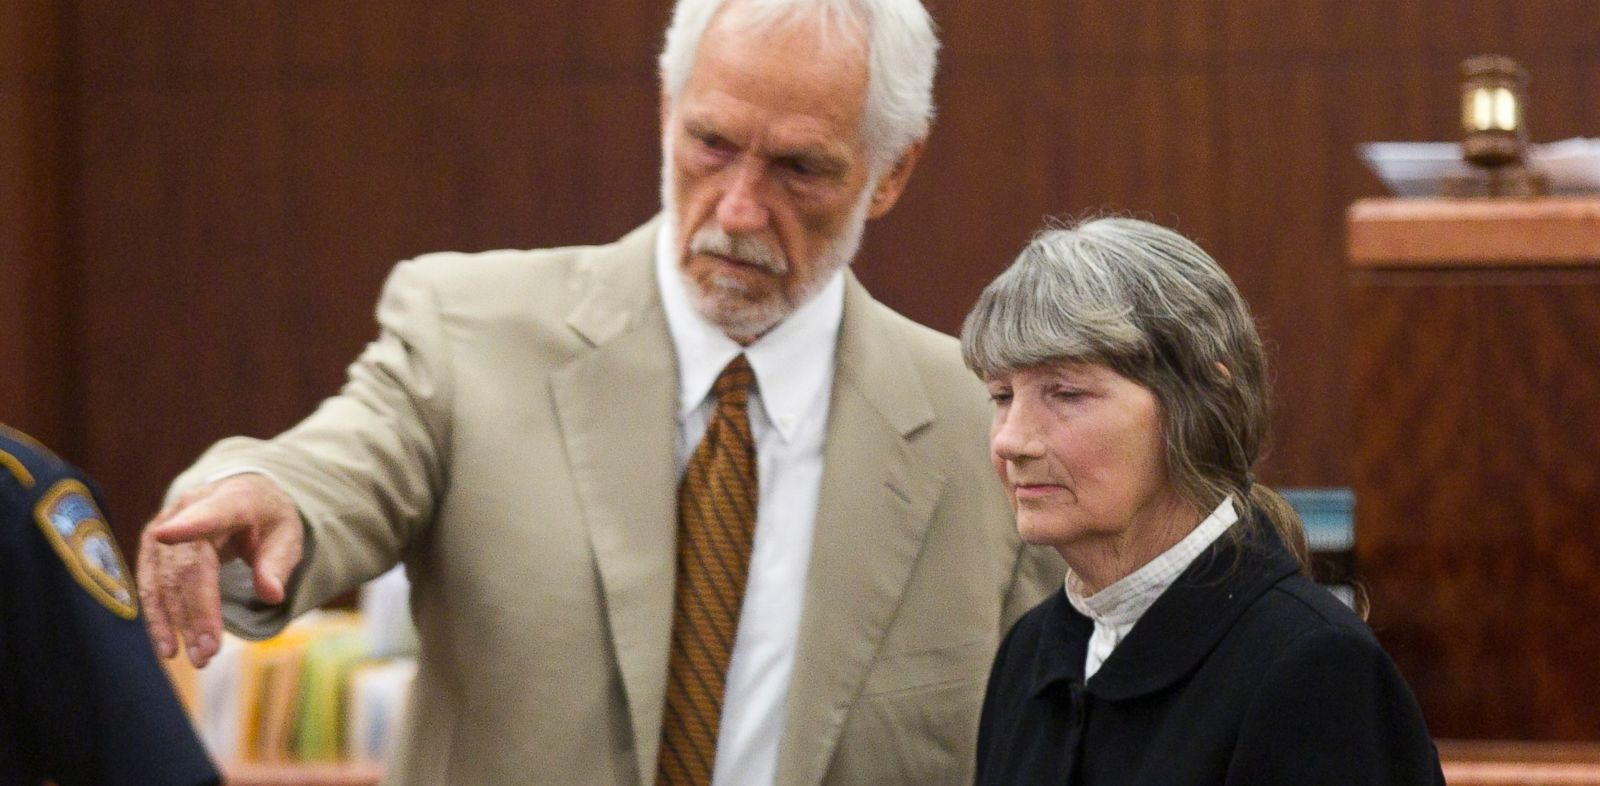 PHOTO: Attorney James Stafford, left, shows Carolyn Krizan-Wilson, right, to her seat as she appears in court, Oct. 23, 2013, in Houston.